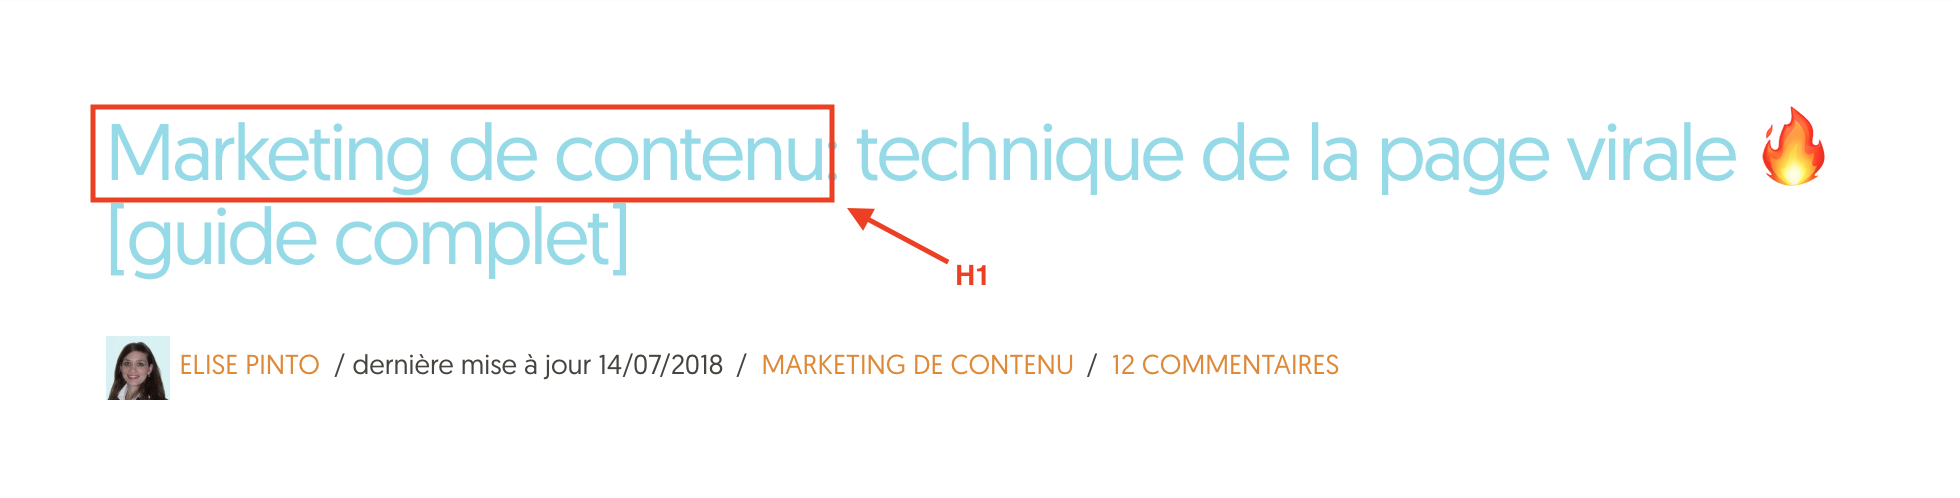 H1 marketing de contenu